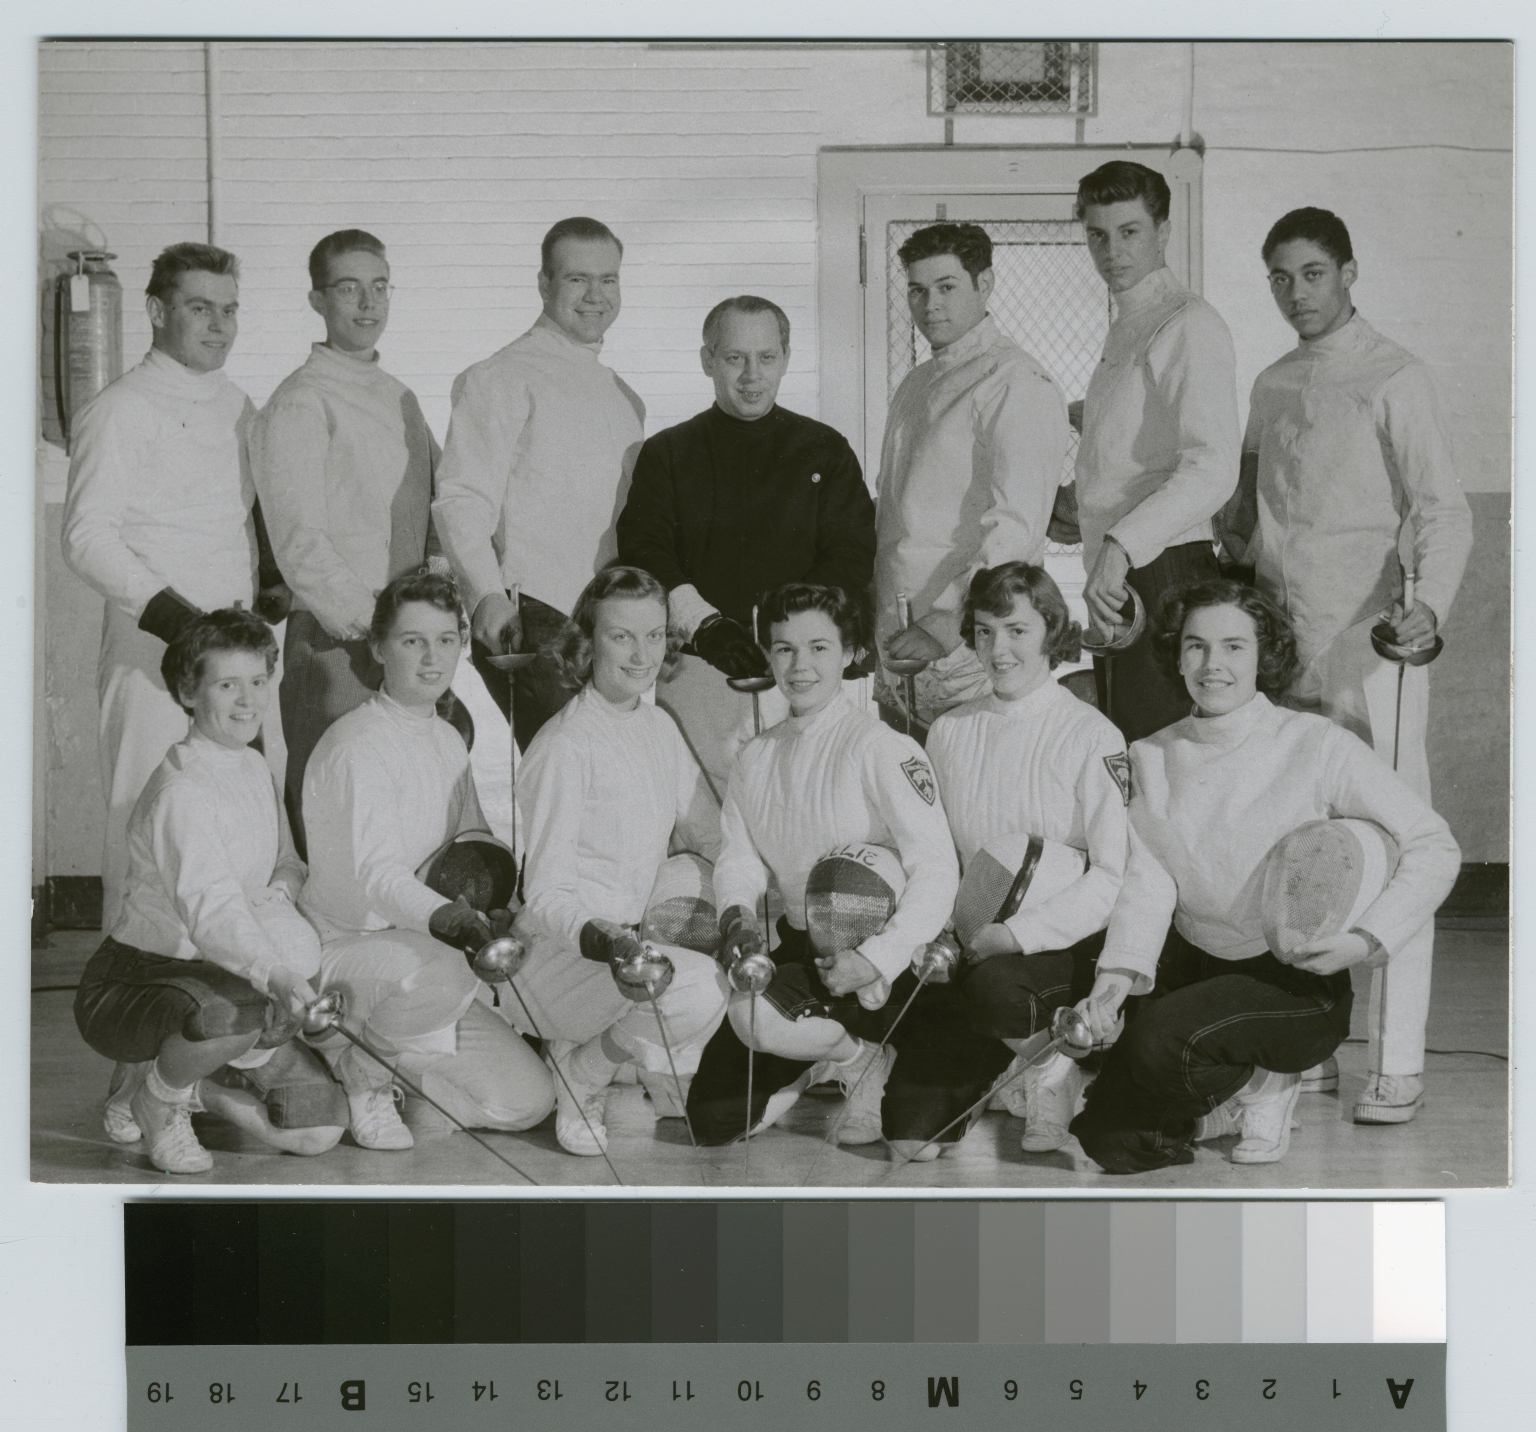 Student activities, group portrait of the RIT fencing team with their coach Fritz Florescue, 1953